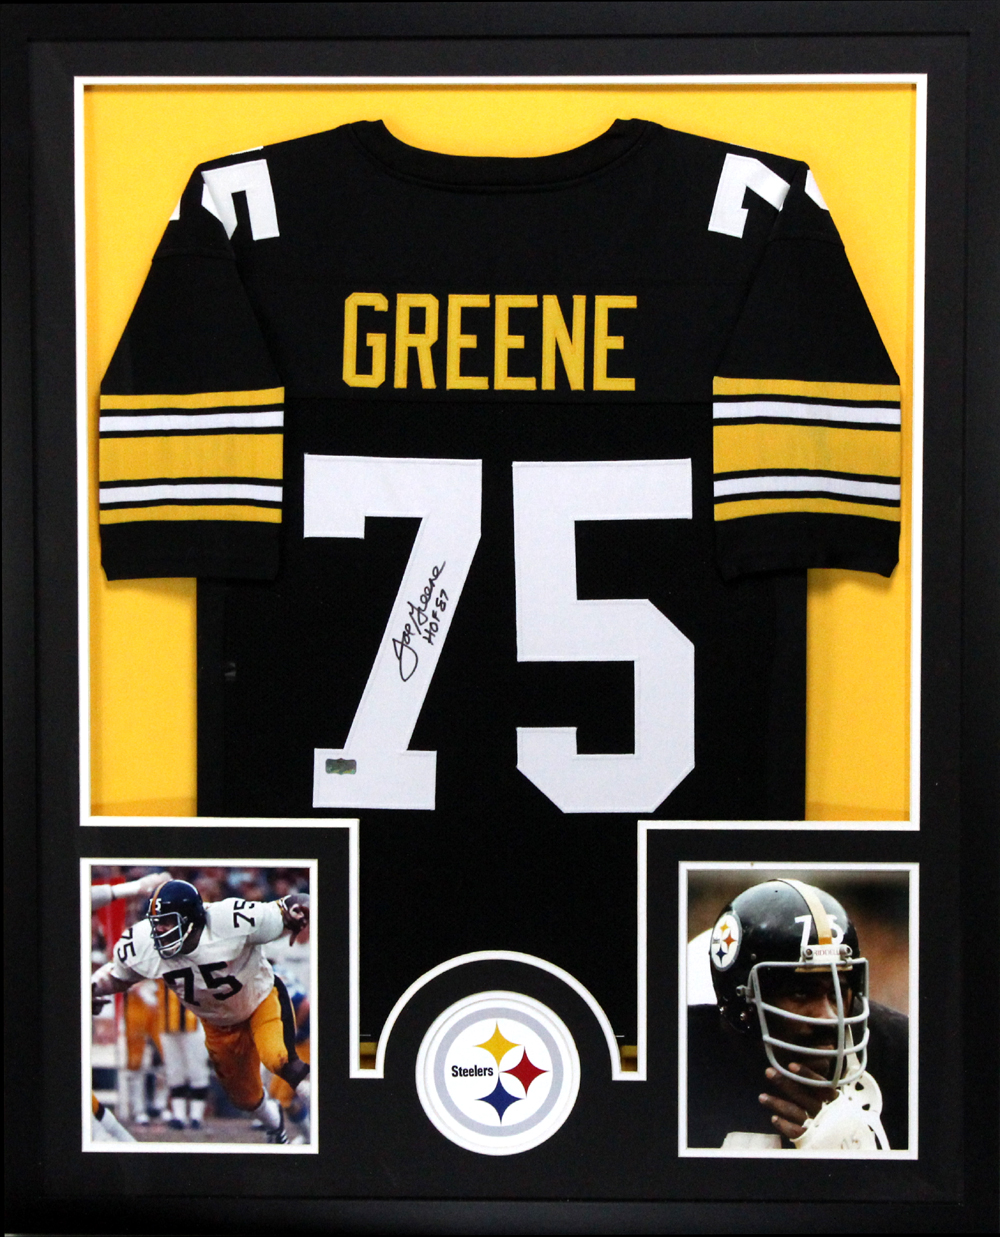 separation shoes 99ab7 9e903 Joe Greene Signed Pittsburgh Steelers Framed Custom Black Jersey With